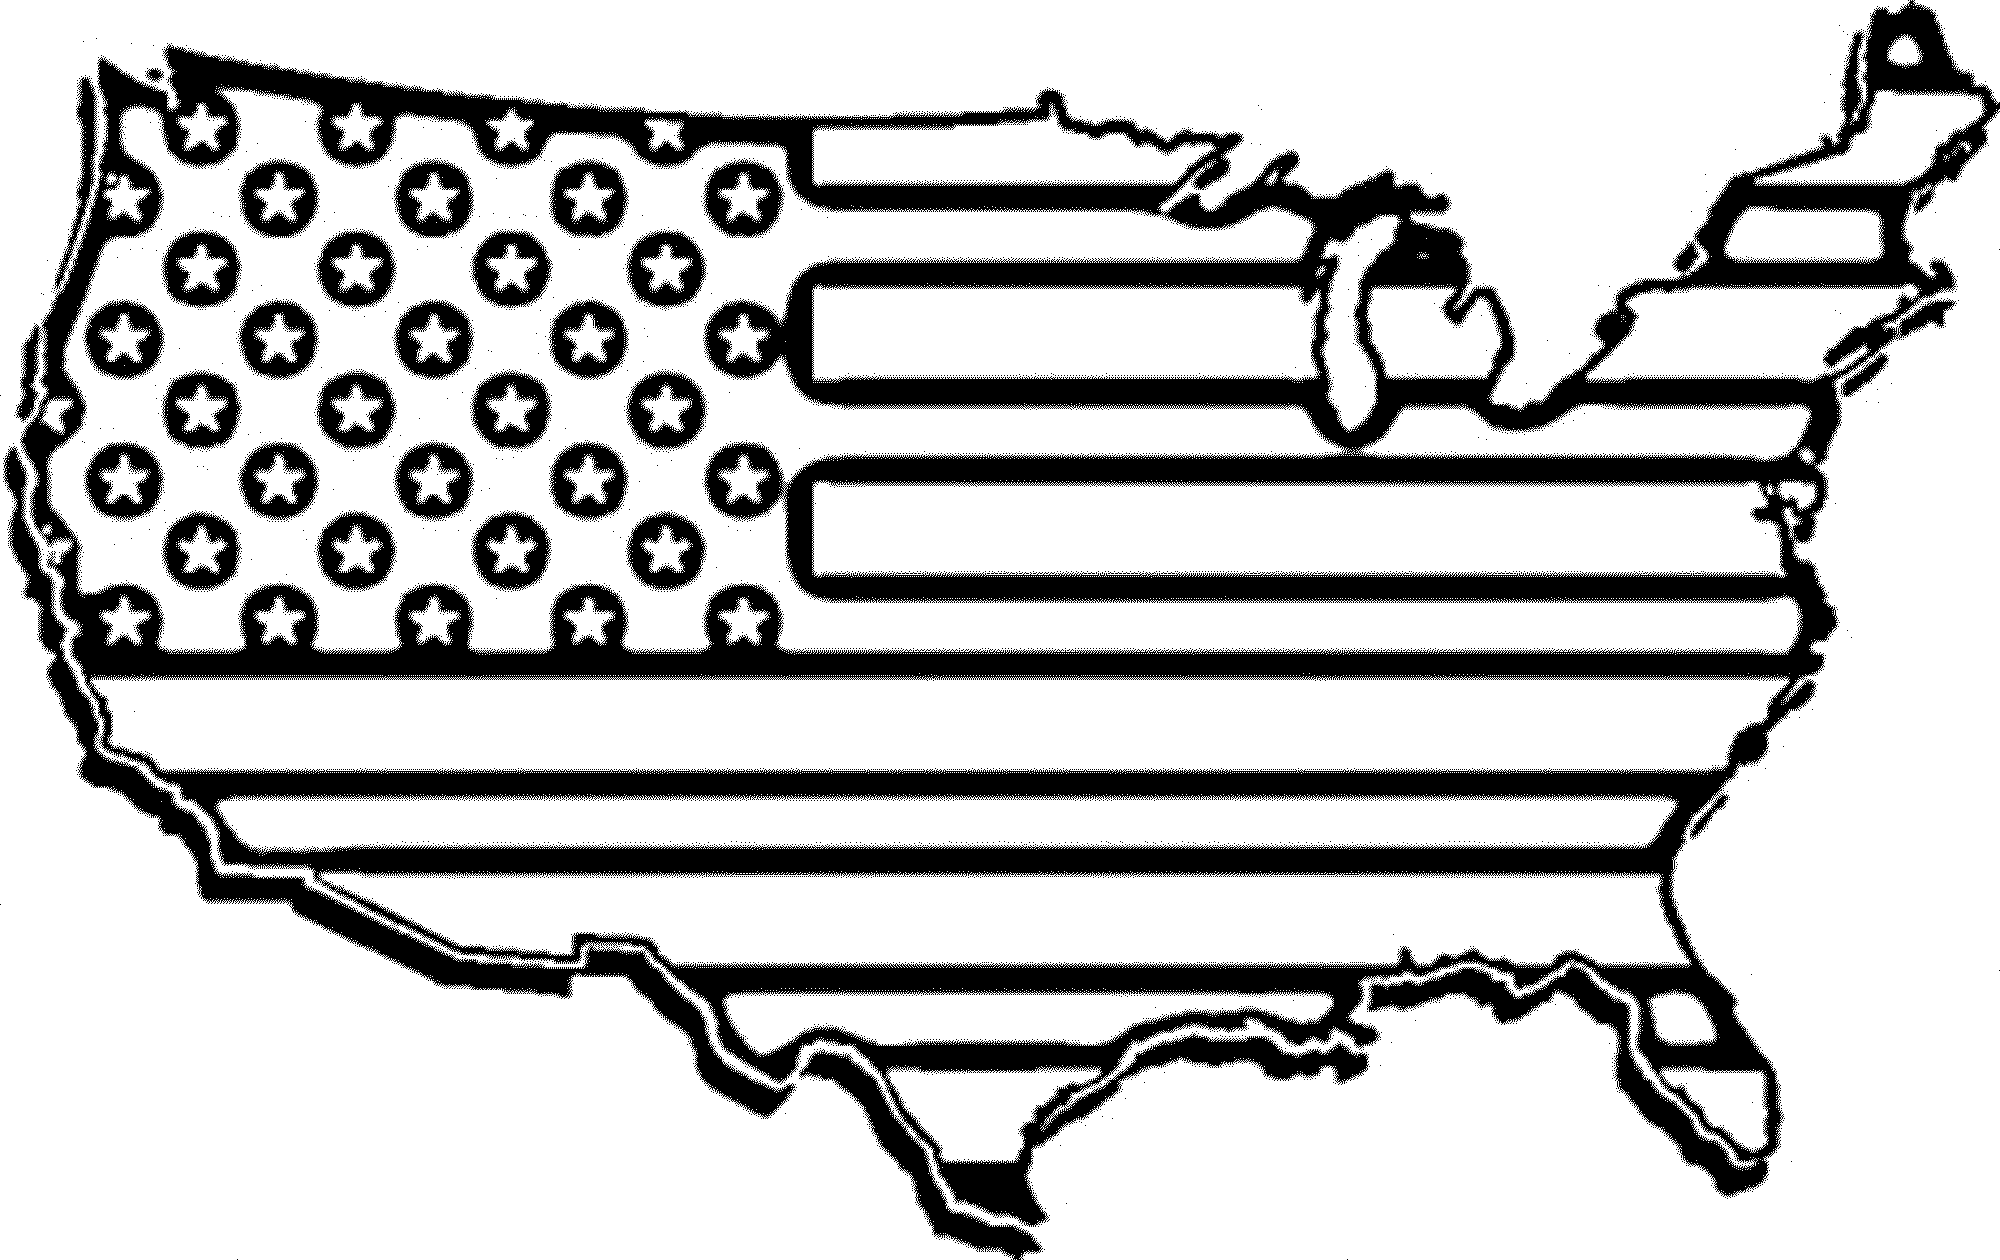 the american flag coloring page american flag clip art coloring page bestappsforkidscom the coloring flag american page